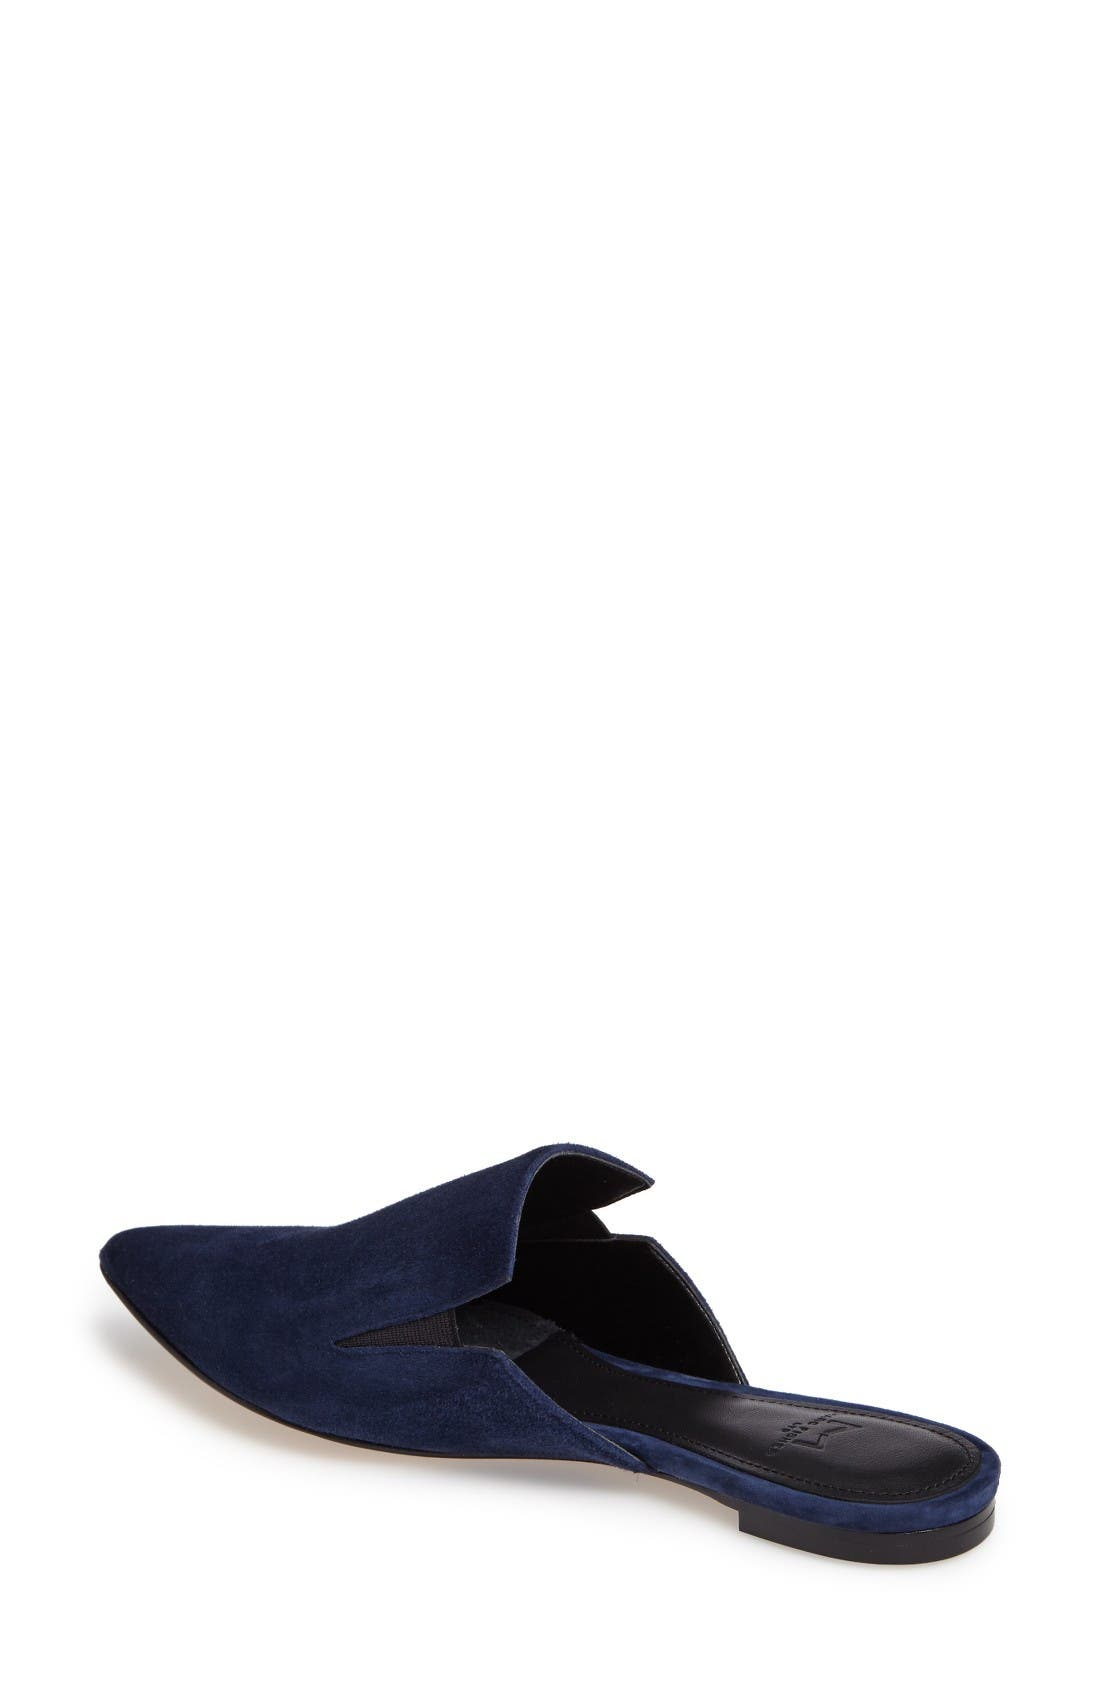 Alternate Image 2  - Marc Fisher LTD Shiloh Flat Mule (Women)